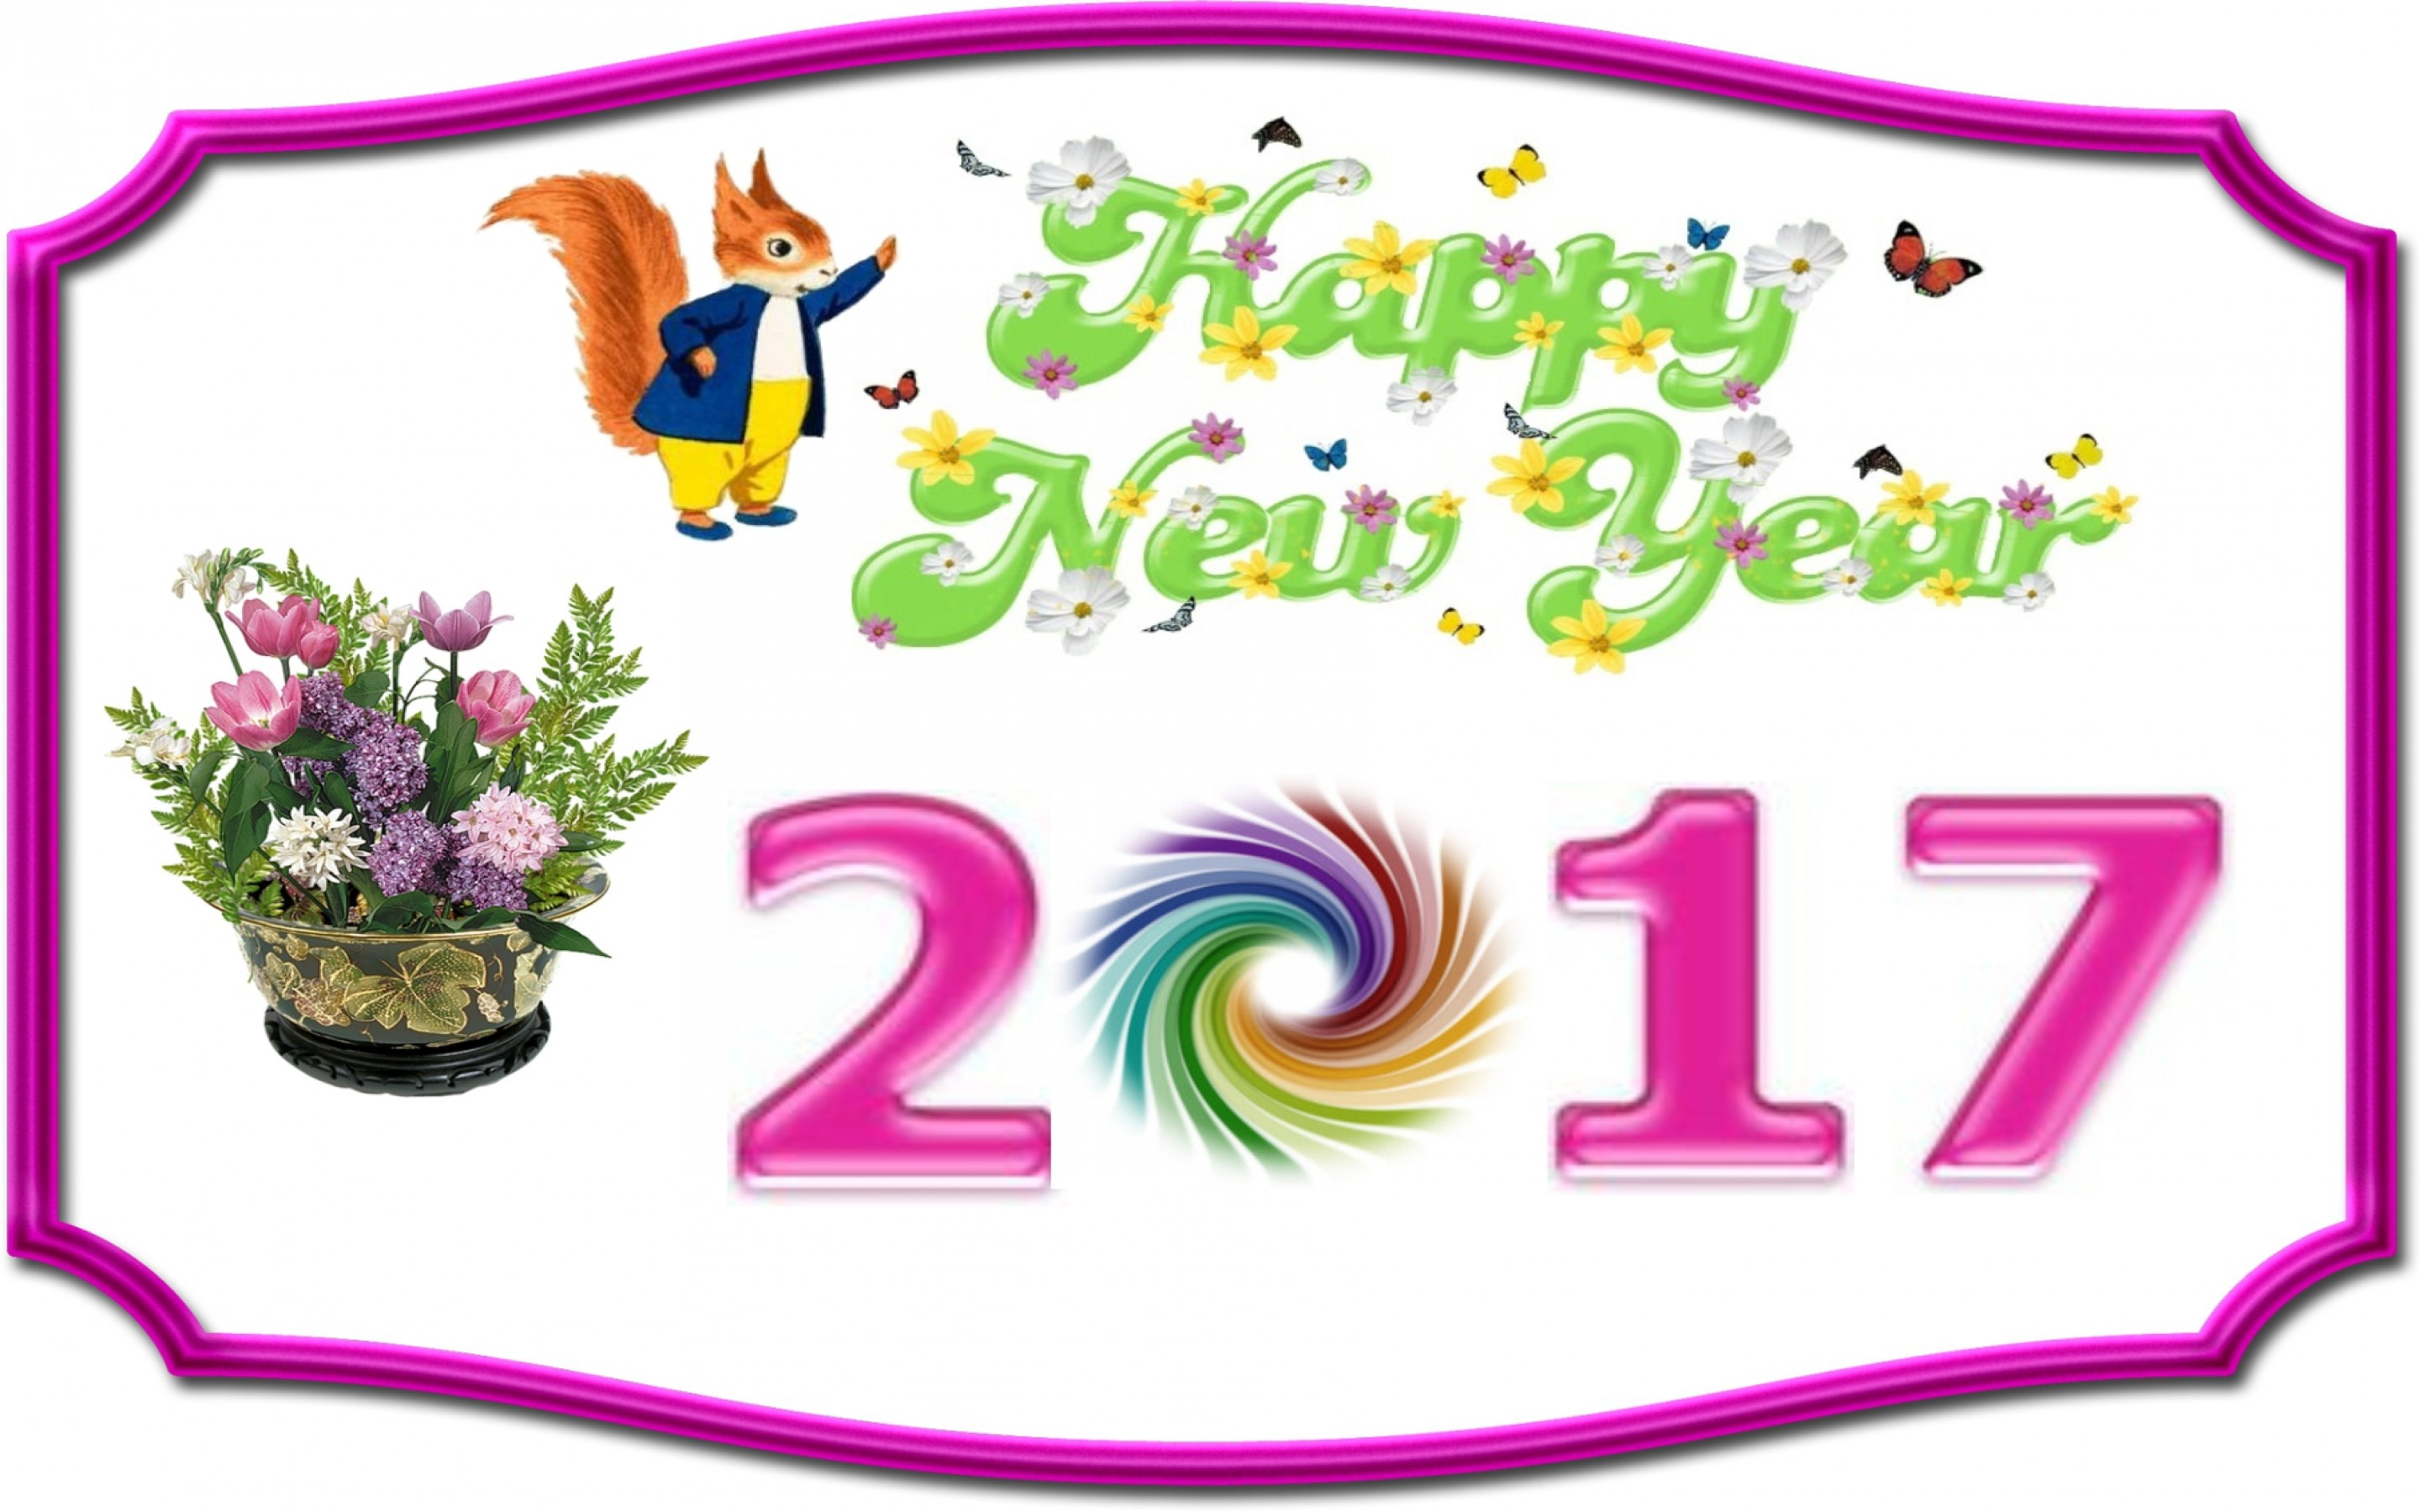 Happy New Year 2017 Wallpapers Images Photos Pictures Backgrounds